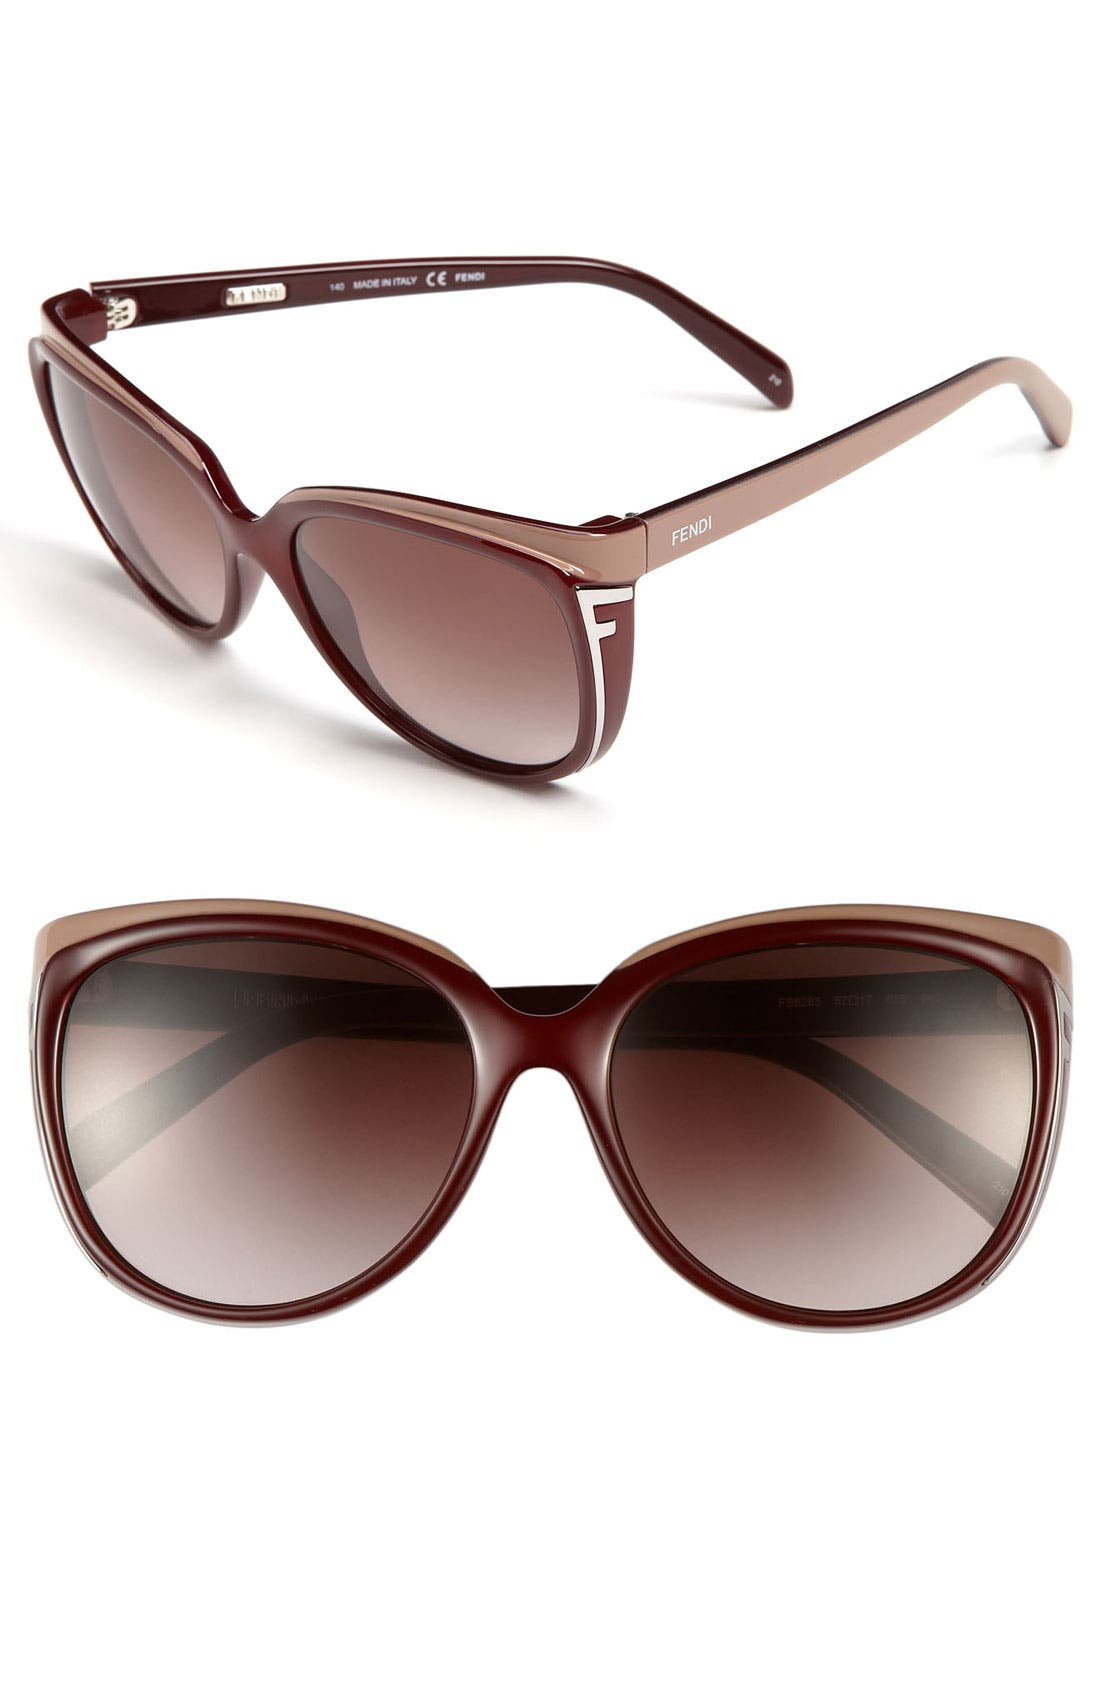 Main Image - Fendi 57mm Oversized Sunglasses